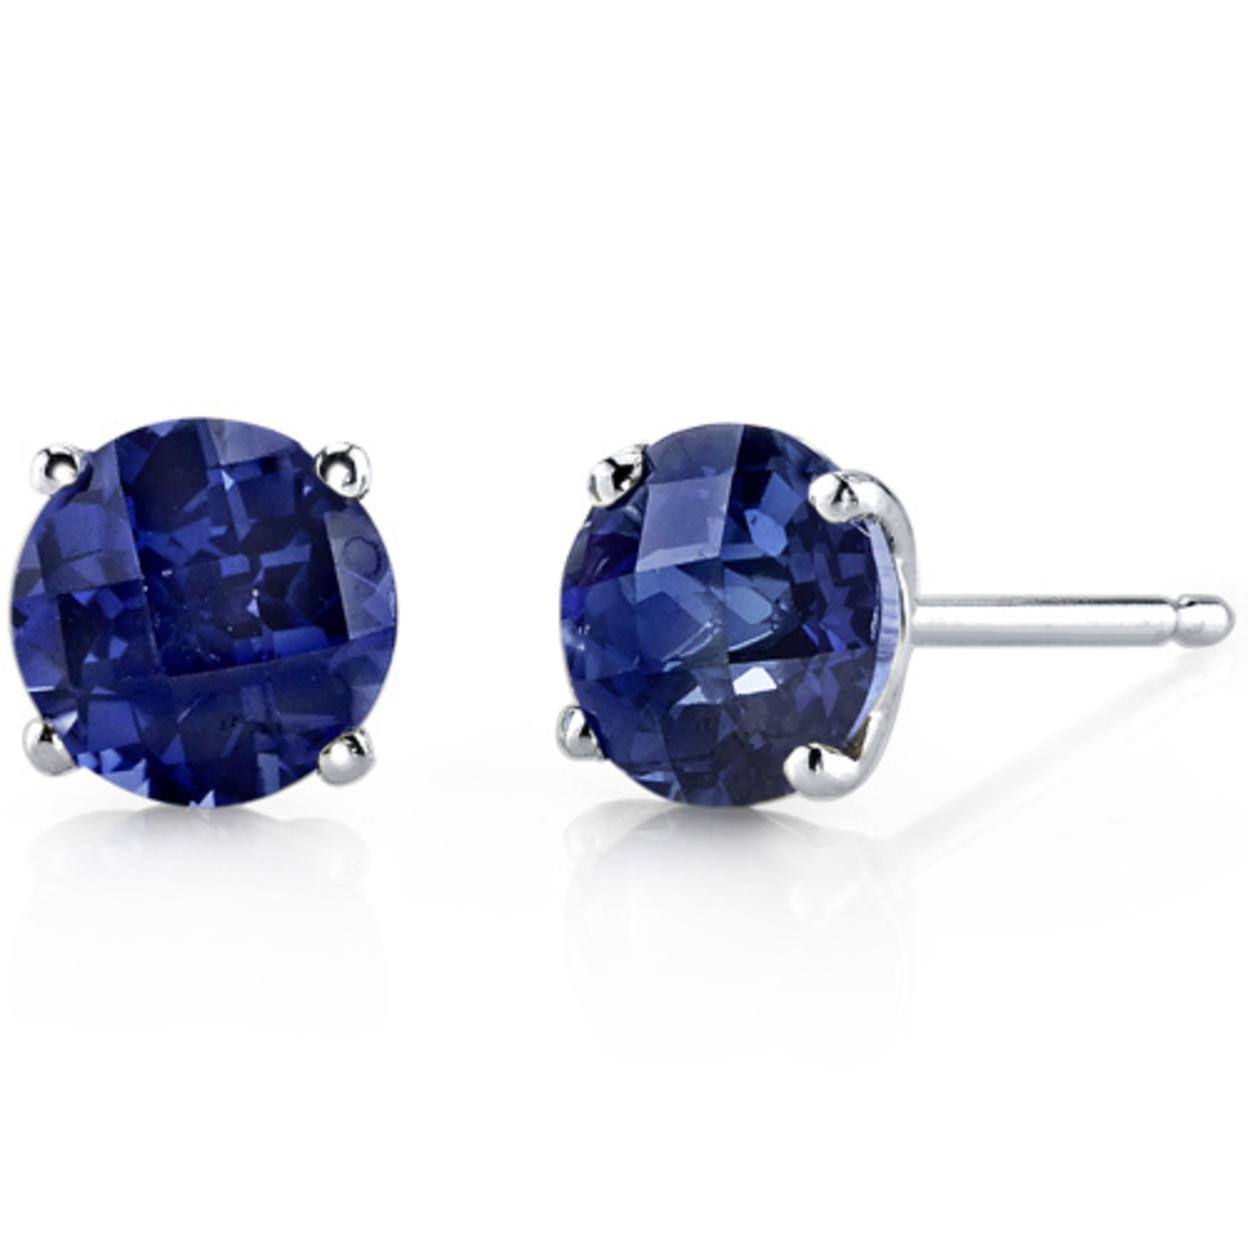 14 Karat White Gold Round Cut 2.25 Carats Created Blue Sapphire Stud Earrings